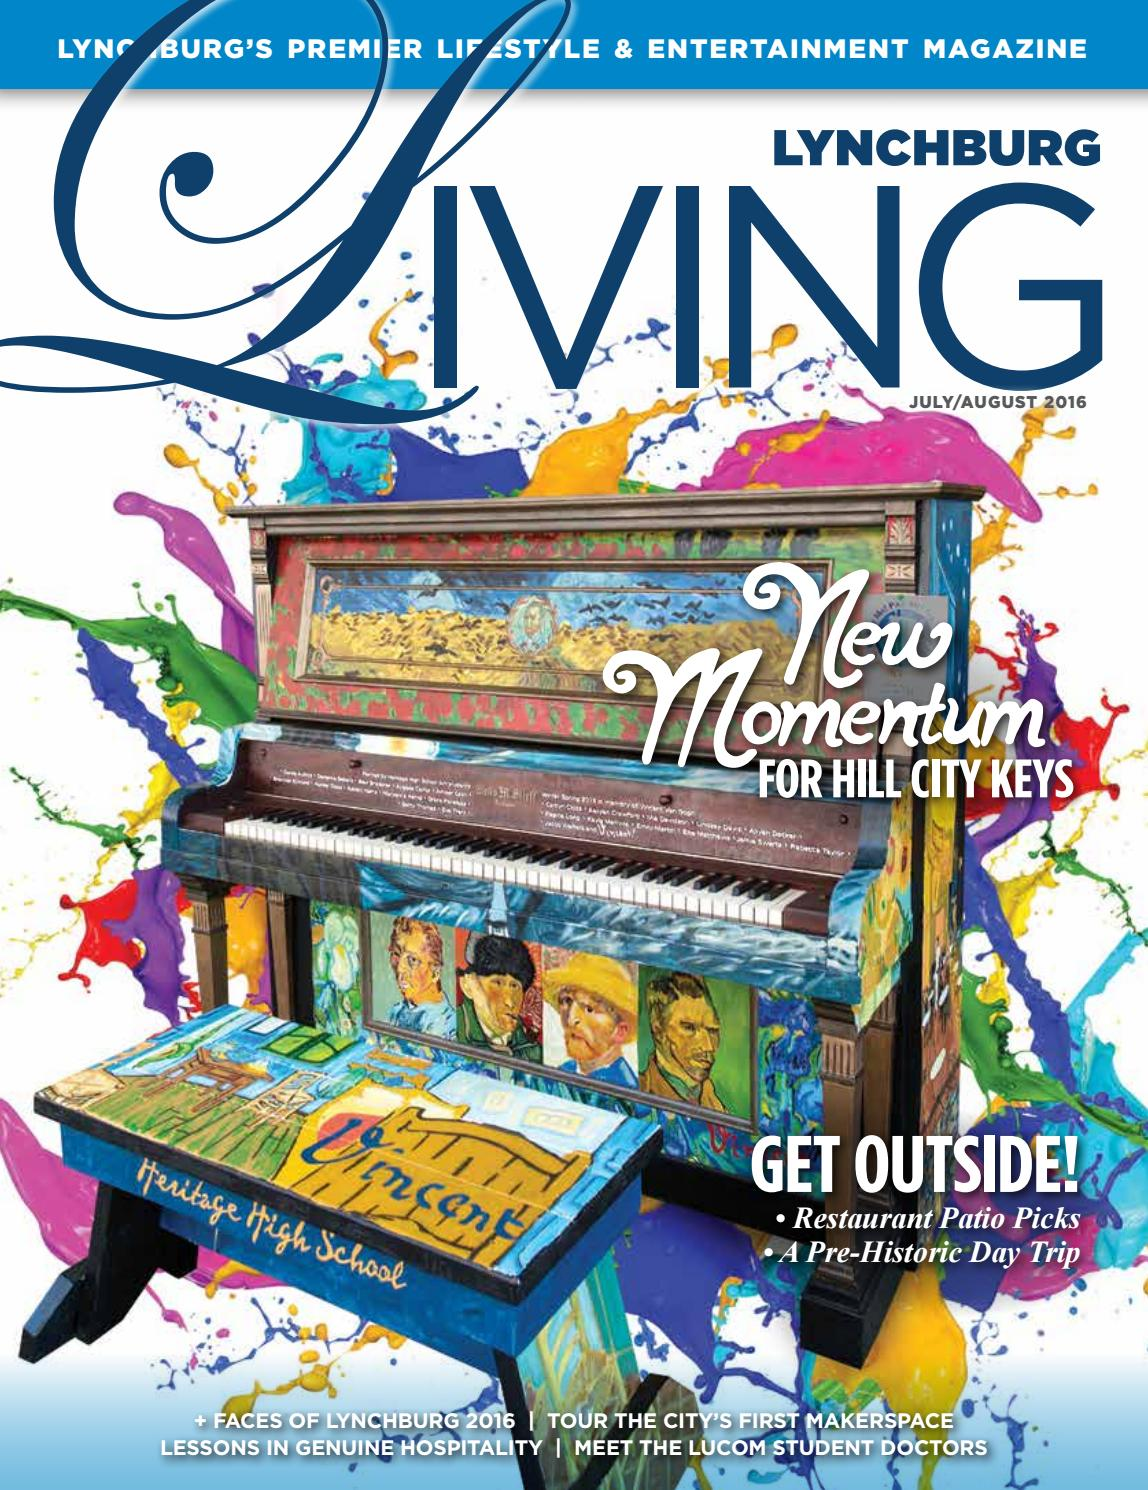 lynchburg living s best of lynchburg by vistagraphics lynchburg living magazine 2016